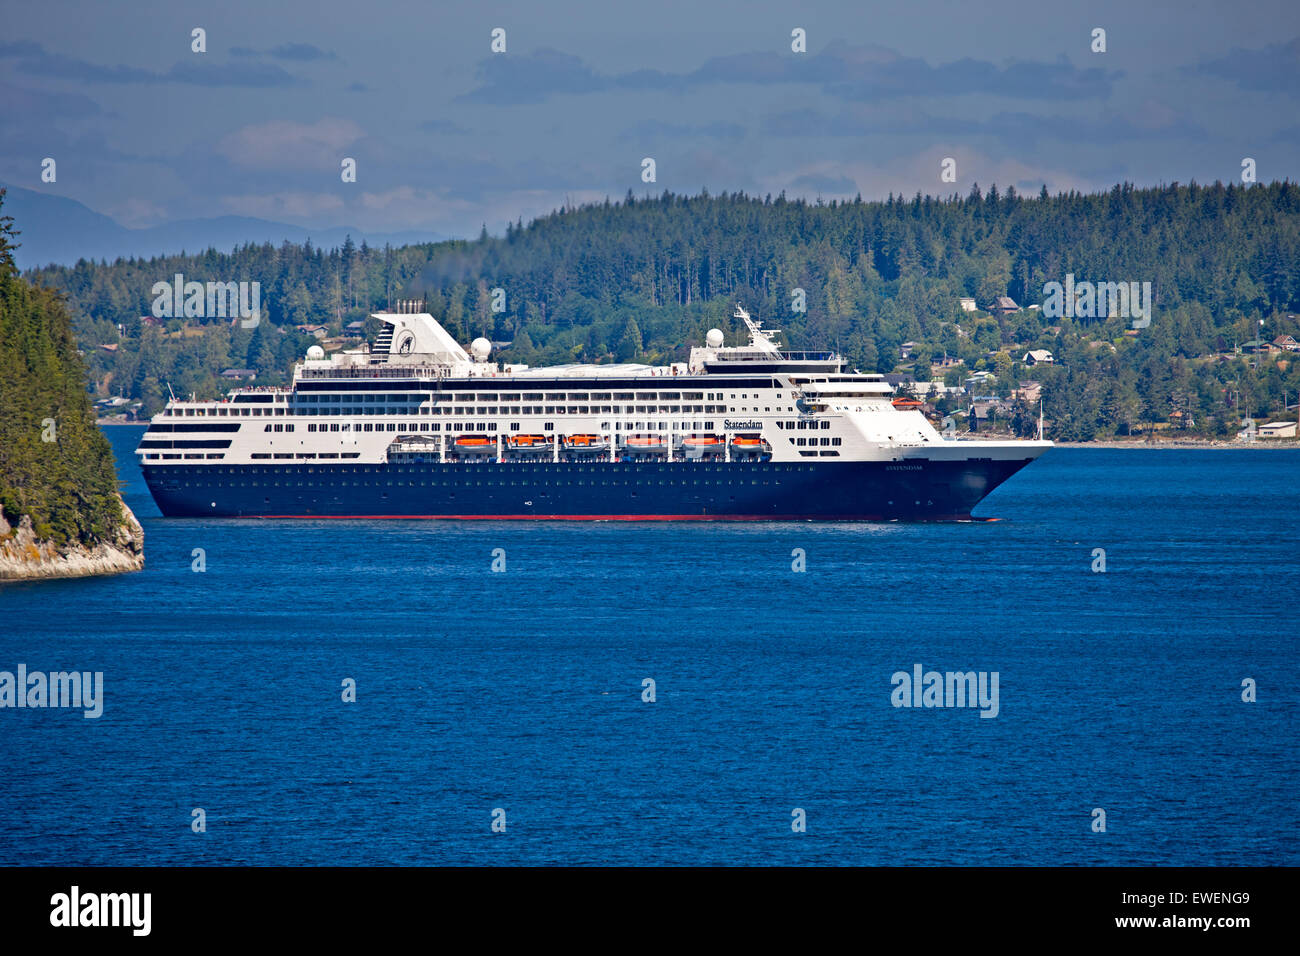 Holland America 'Statendam' cruise ship passing by Haddington Island and Sointula on Malcolm Island off - Stock Image